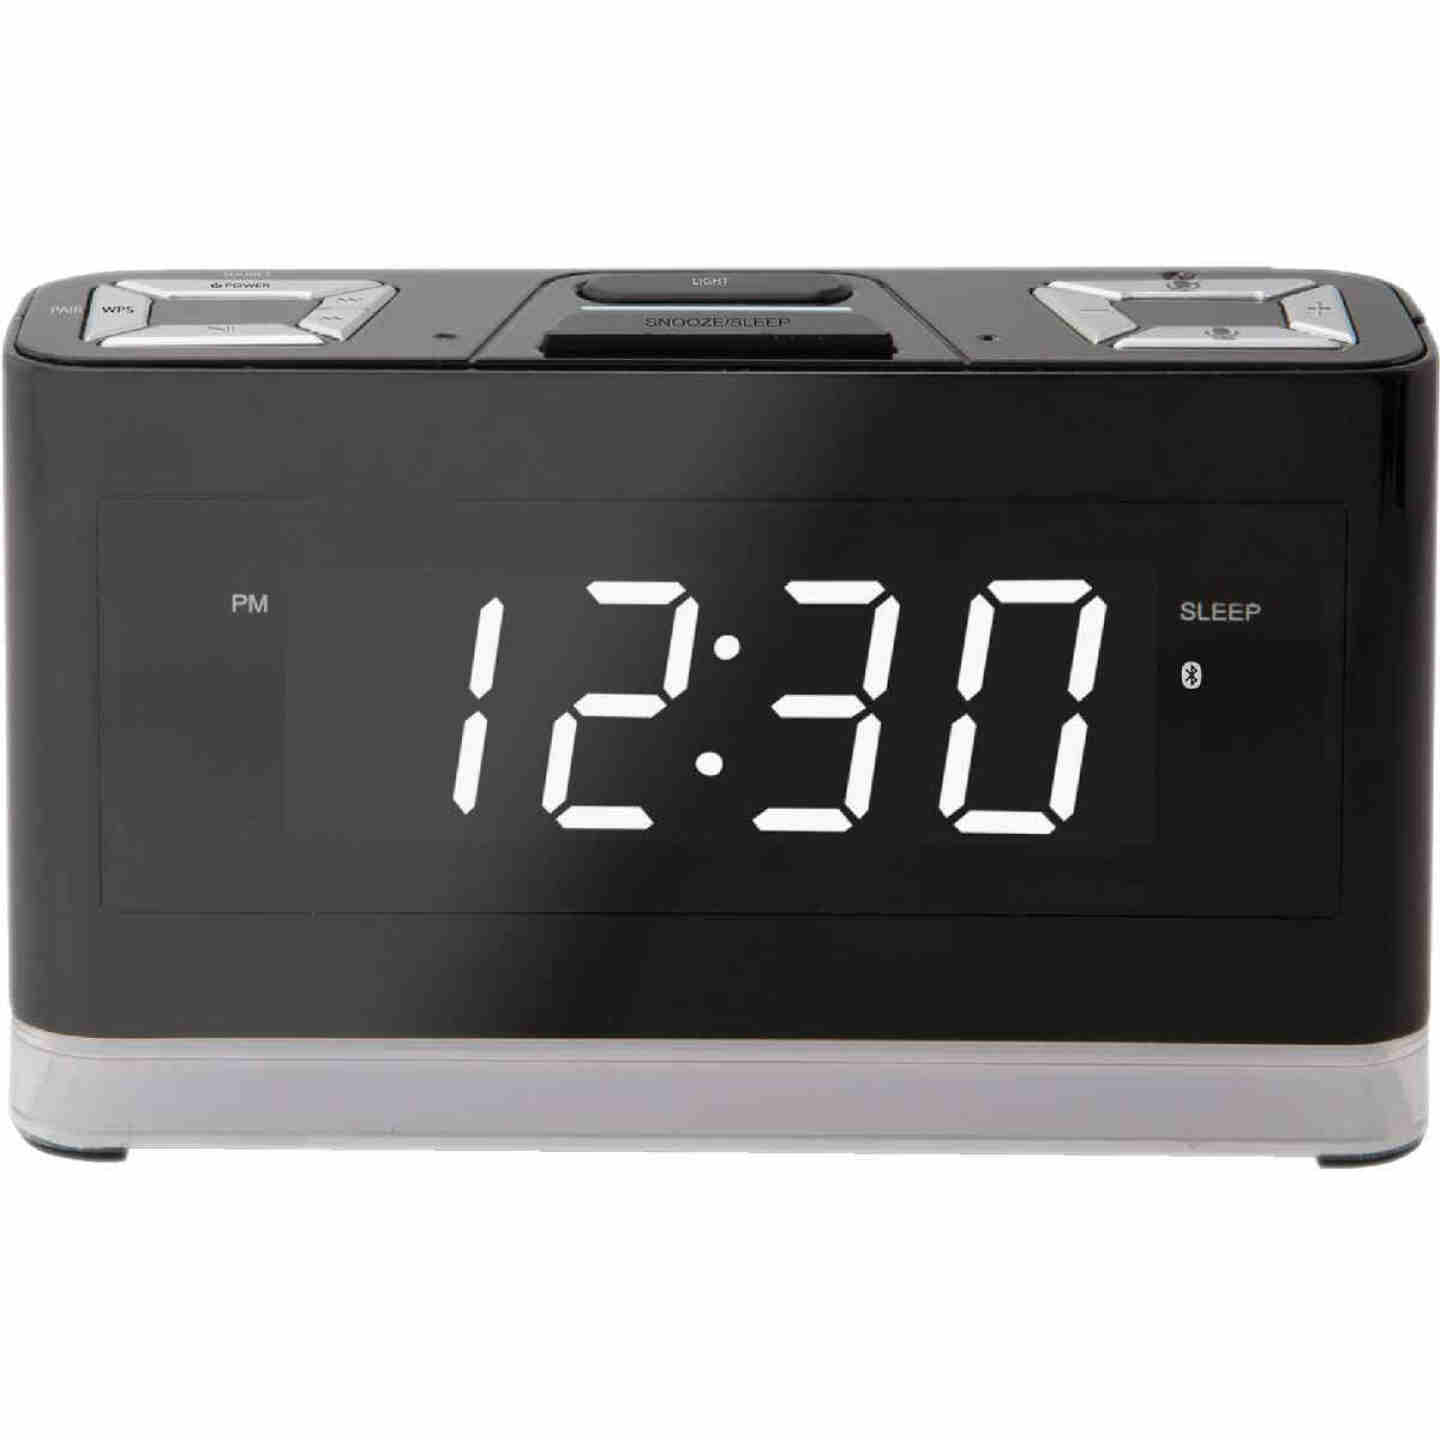 iLive Alexa Bluetooth Wireless Voice Activated Alarm Clock Image 1